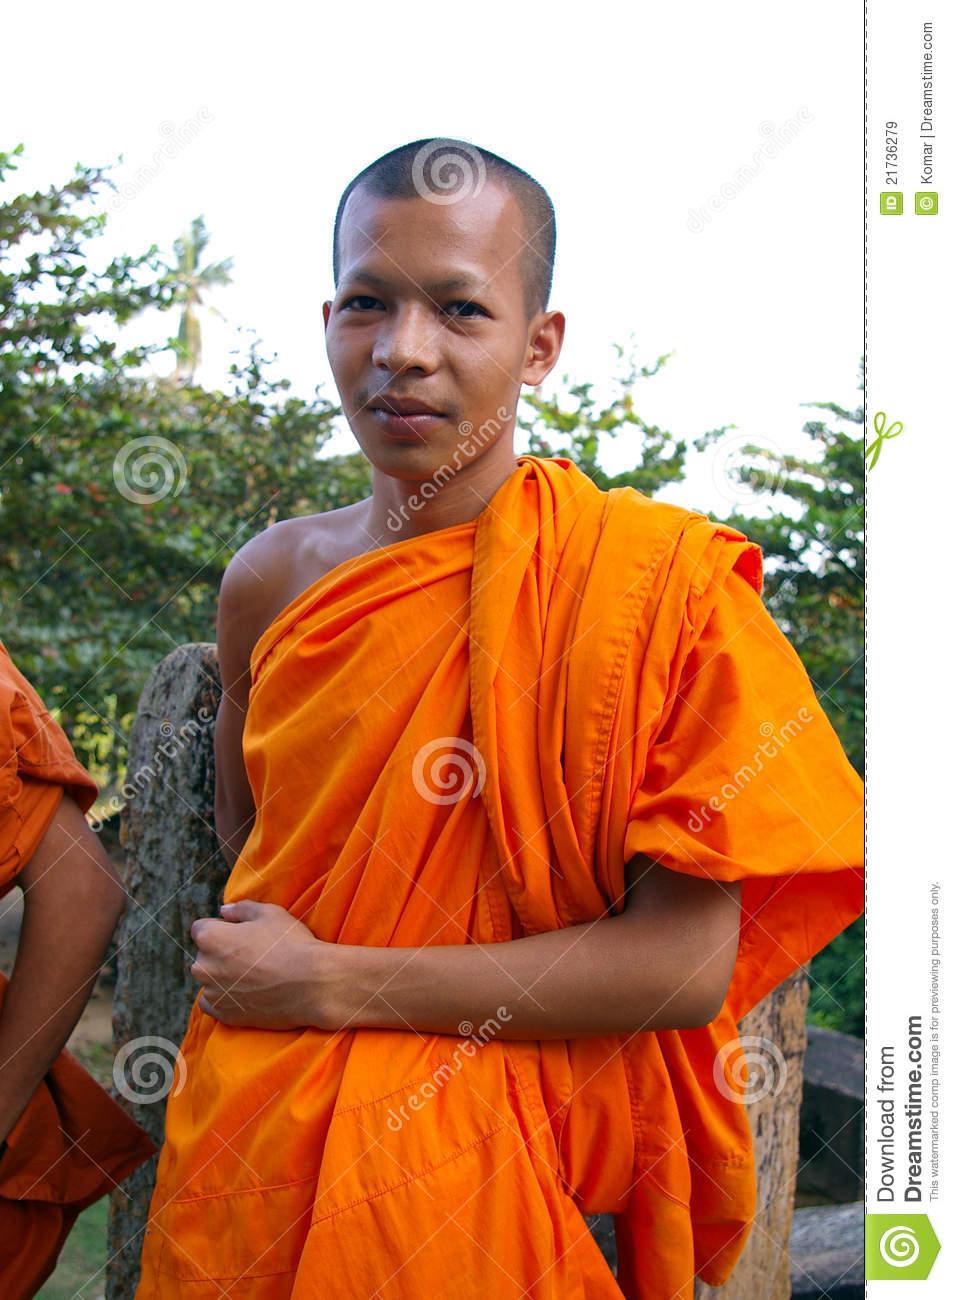 buddhist single men in munford Dating rules according to buddha history deems buddha as one of the wisest men in history.